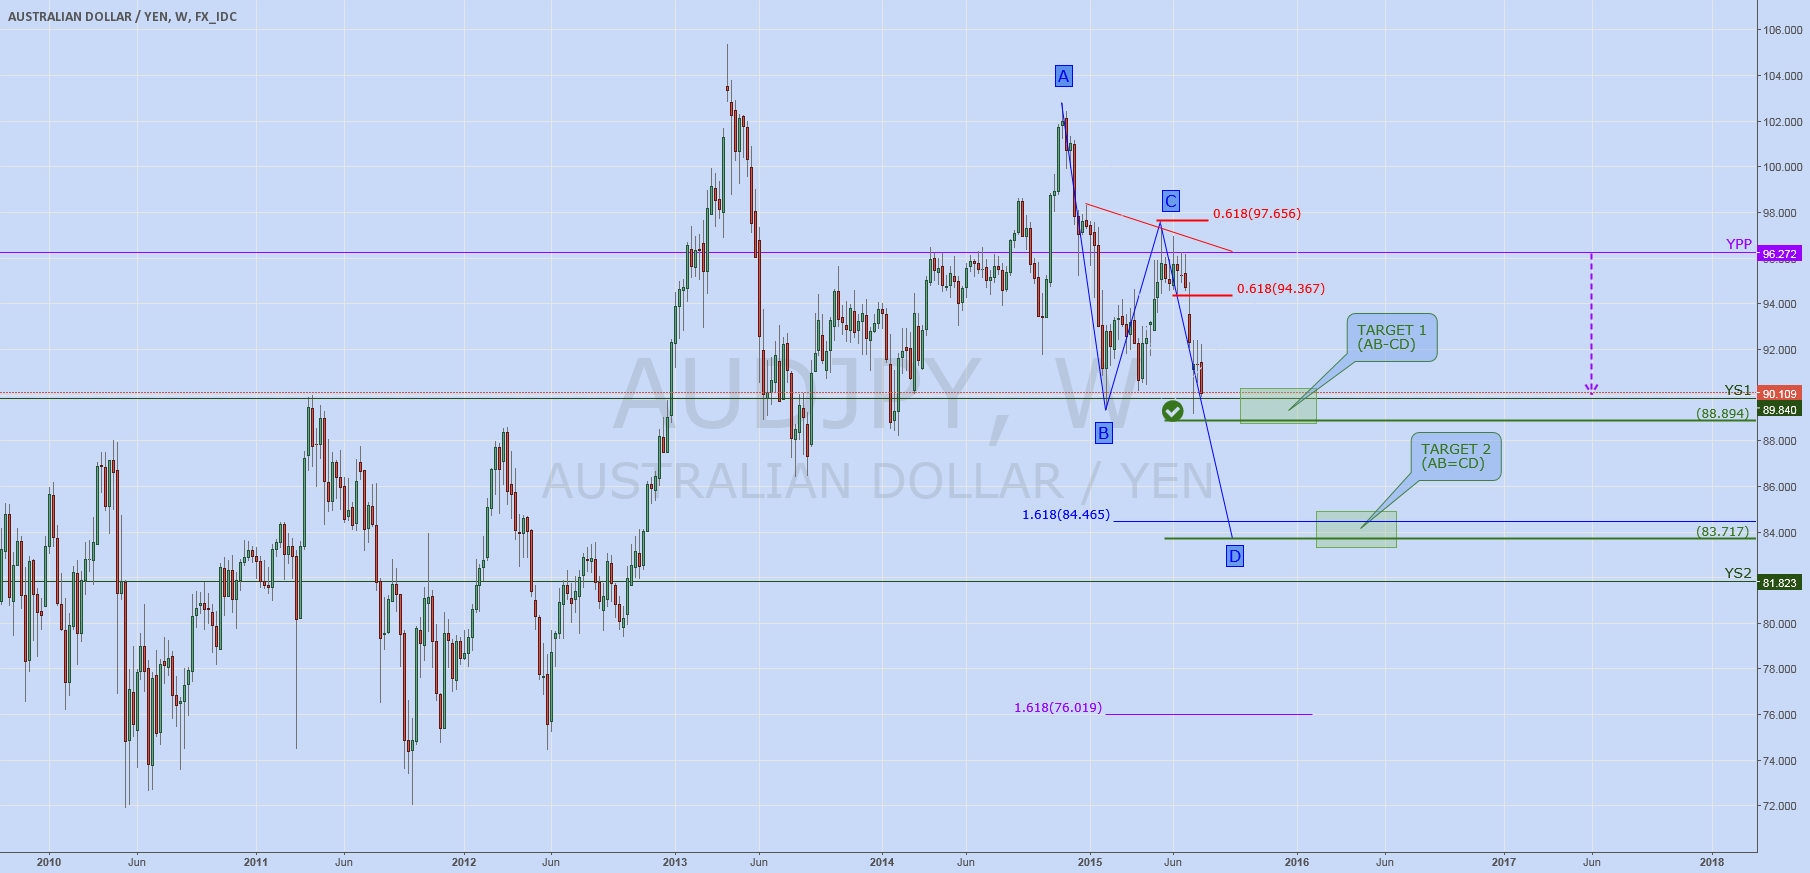 AUDJPY: Consolidation